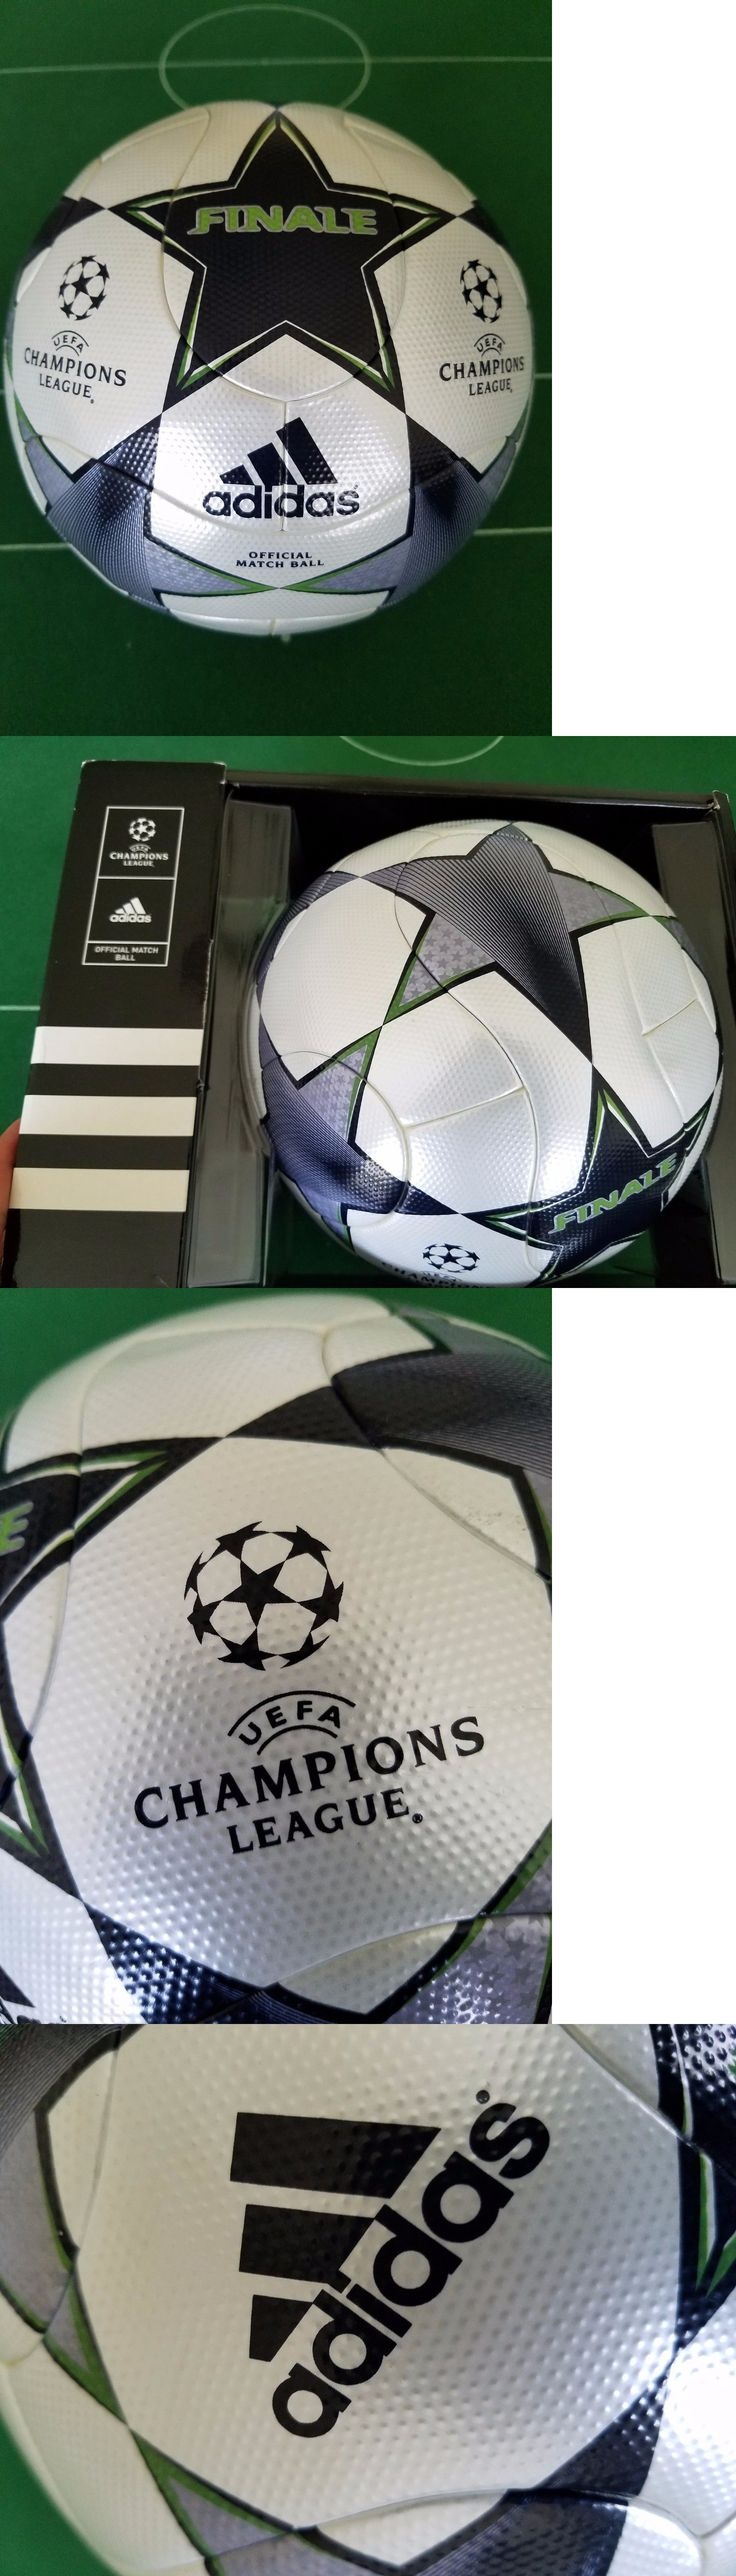 Balls 20863: Adidas Uefa Champions League 2008 2009 Authentic Official Match Soccer Ball -> BUY IT NOW ONLY: $1499.99 on eBay!